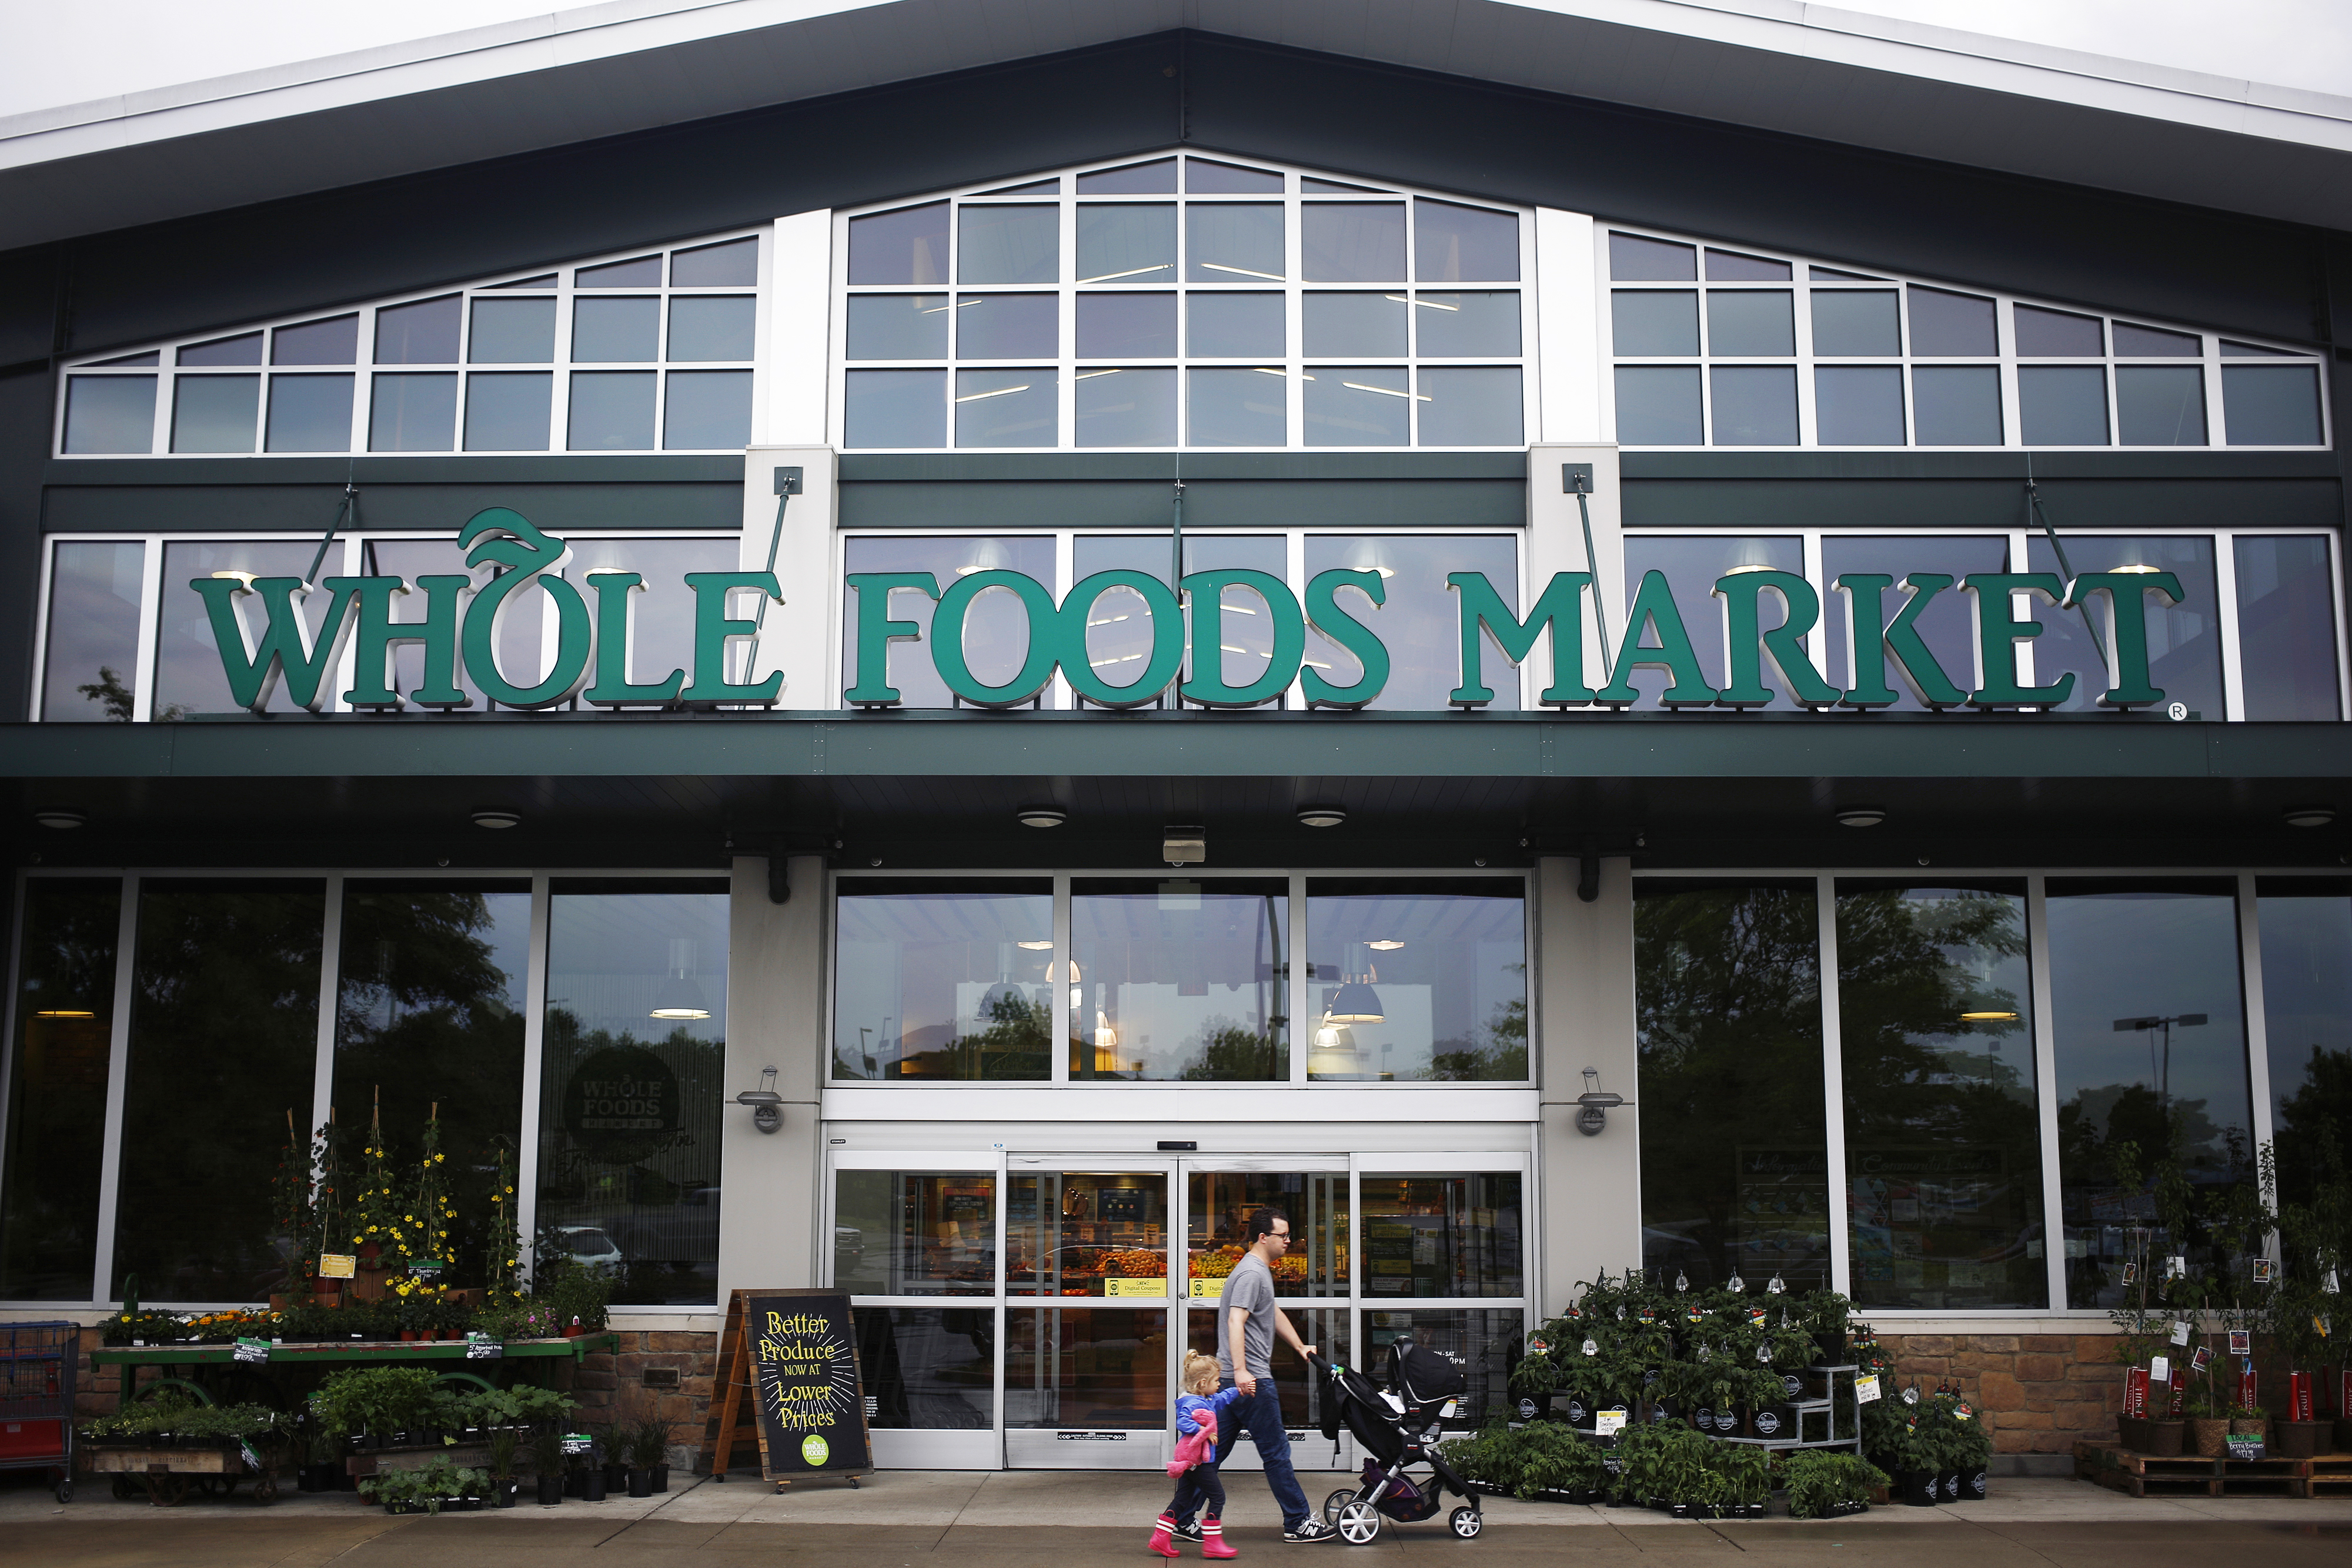 A shopper walks in front of a Whole Foods store in Franklin, Tenn. on April 30, 2016.